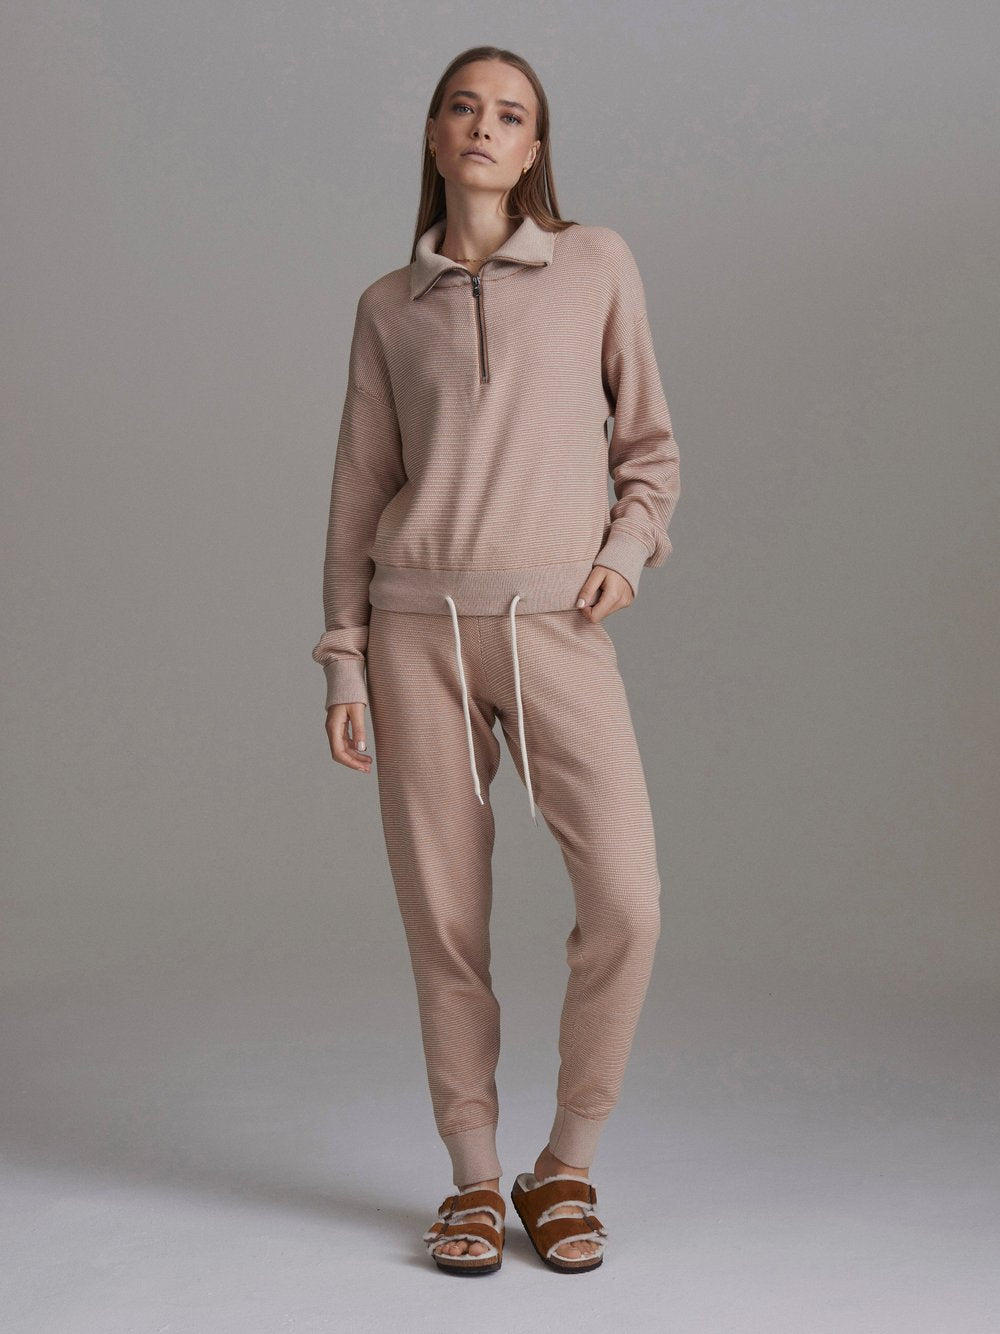 Alice Sweatpants 2.0 in Praline/Ivory